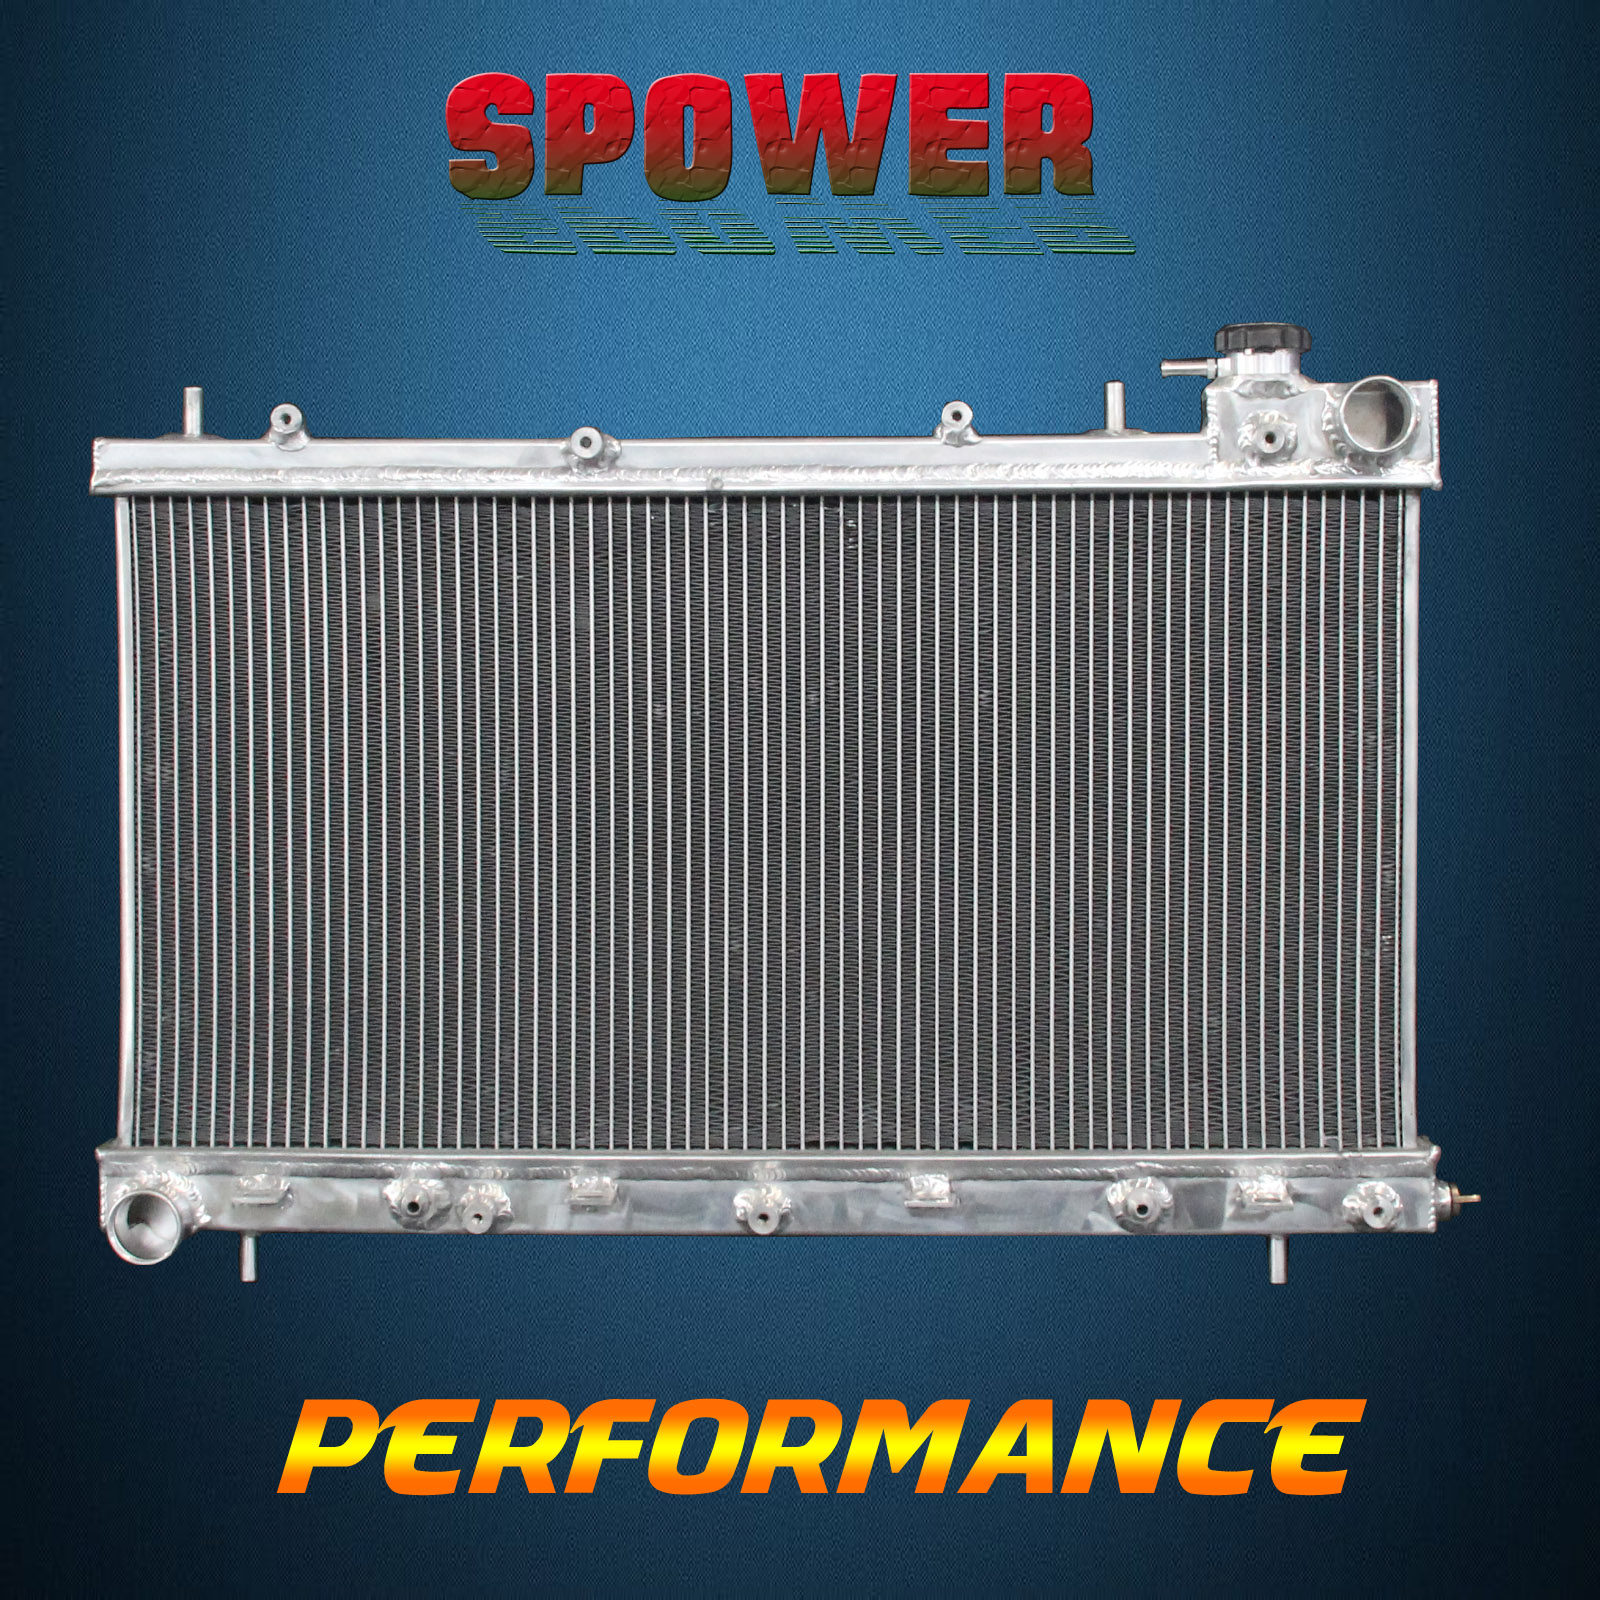 Radiator For 99-02 Subaru Impreza Forester 2.2L Free Fast Shipping Great Quality